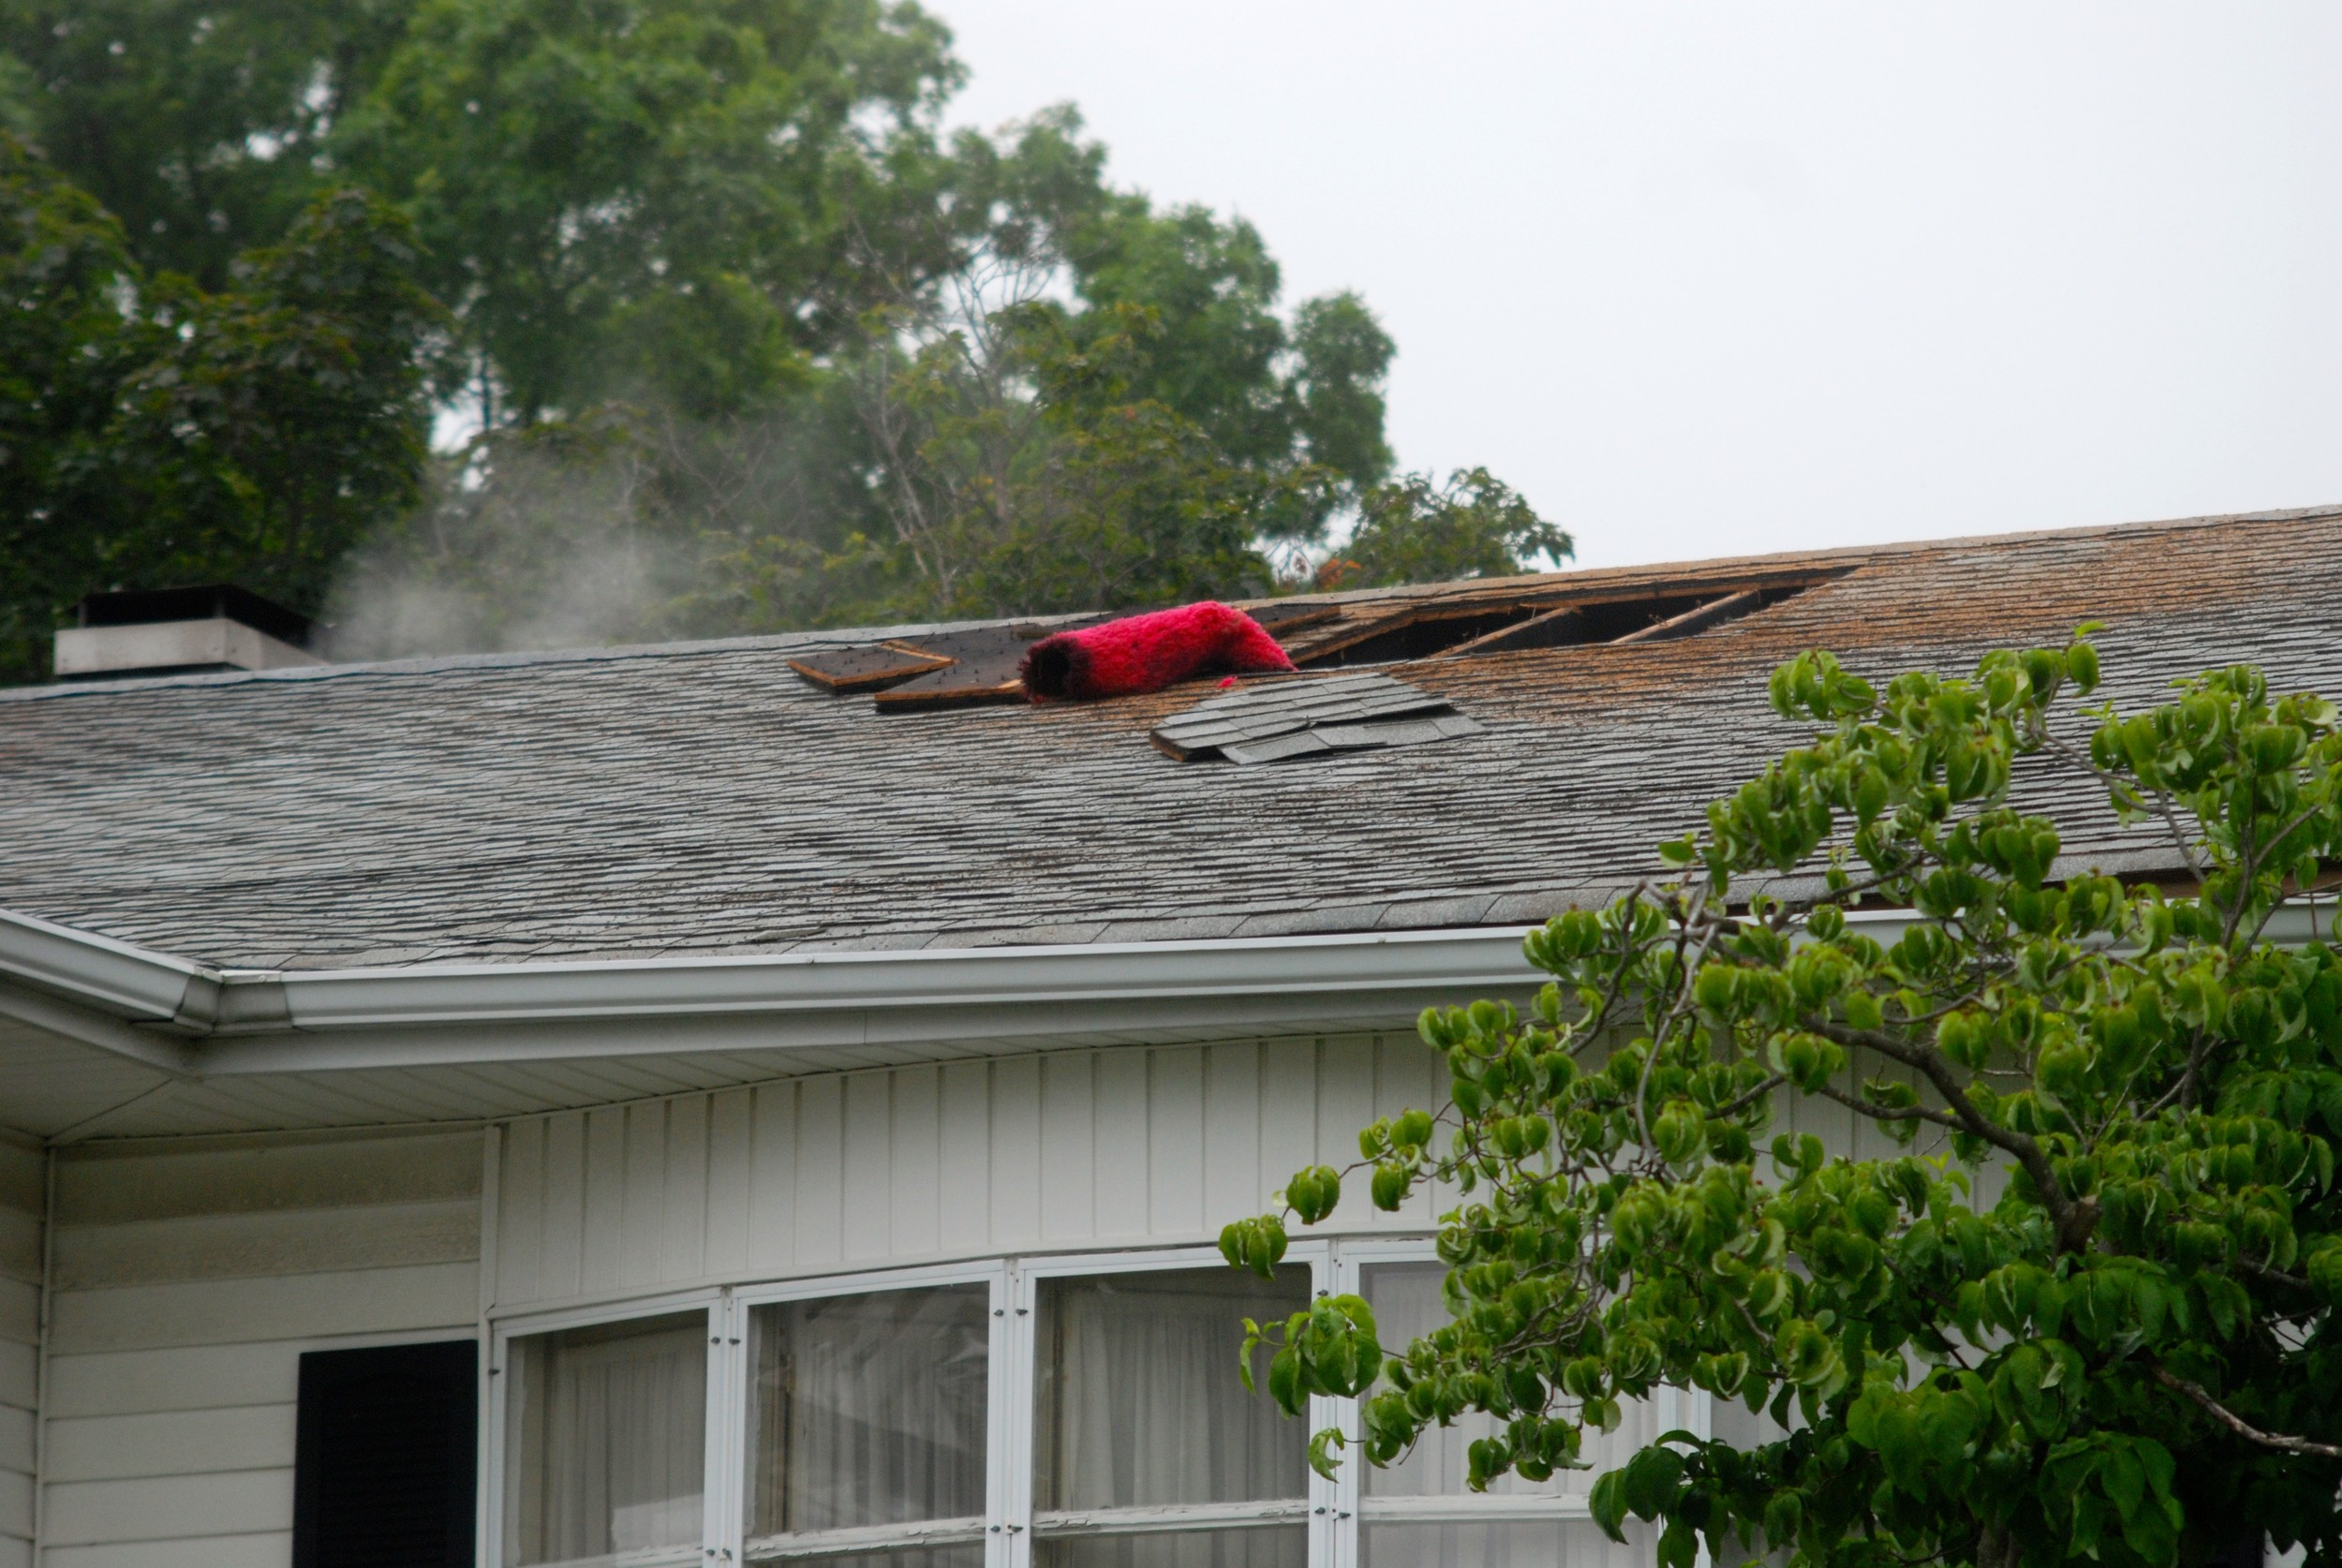 Firefighters cut through the roof to open a cavity where they could fight the fire.